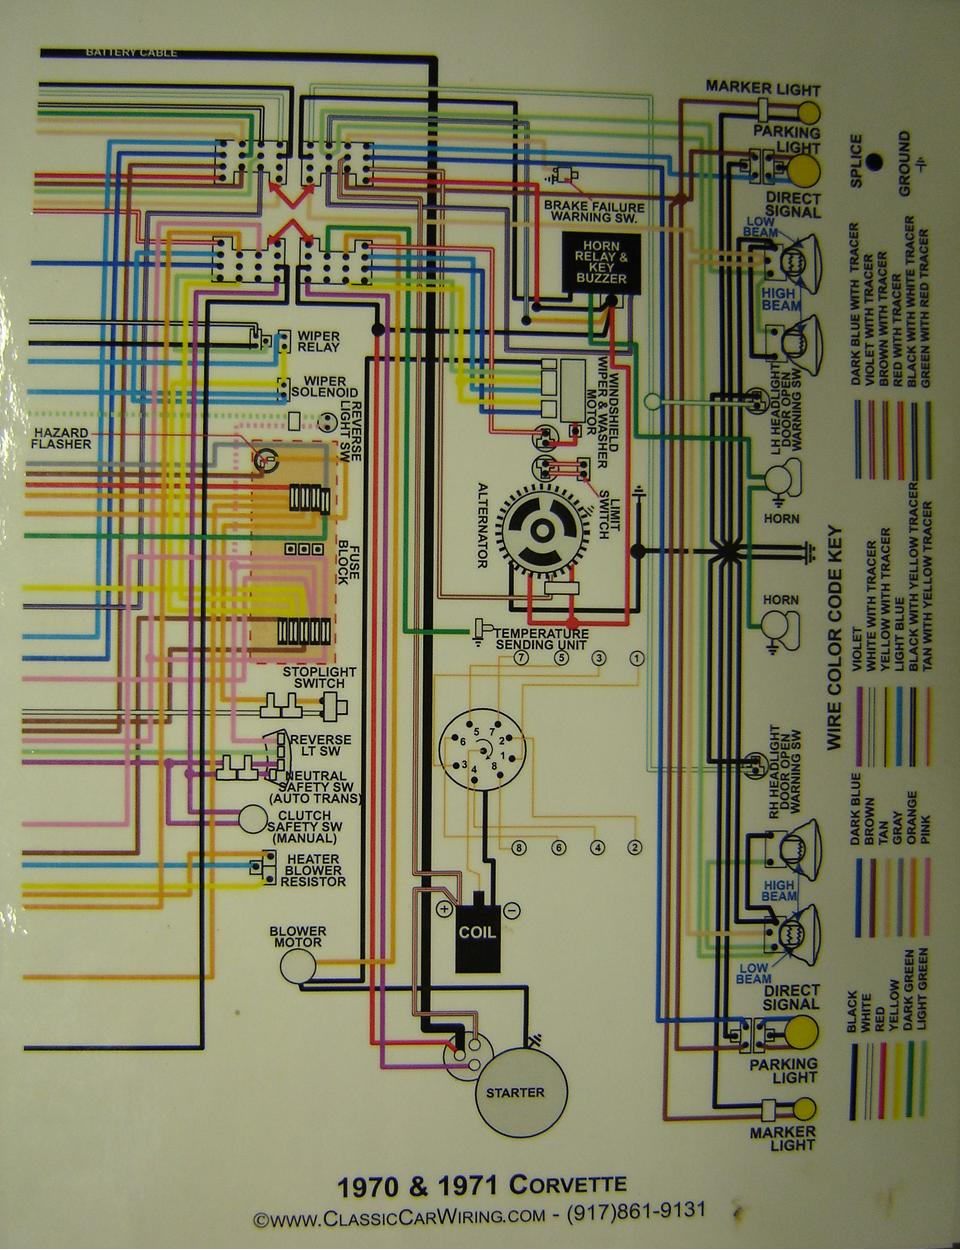 1972 Nova Wiring Diagram In Color The Portal And Forum Of Chevrolet Third Level Rh 7 4 13 Jacobwinterstein Com 1974 1969 Chevy